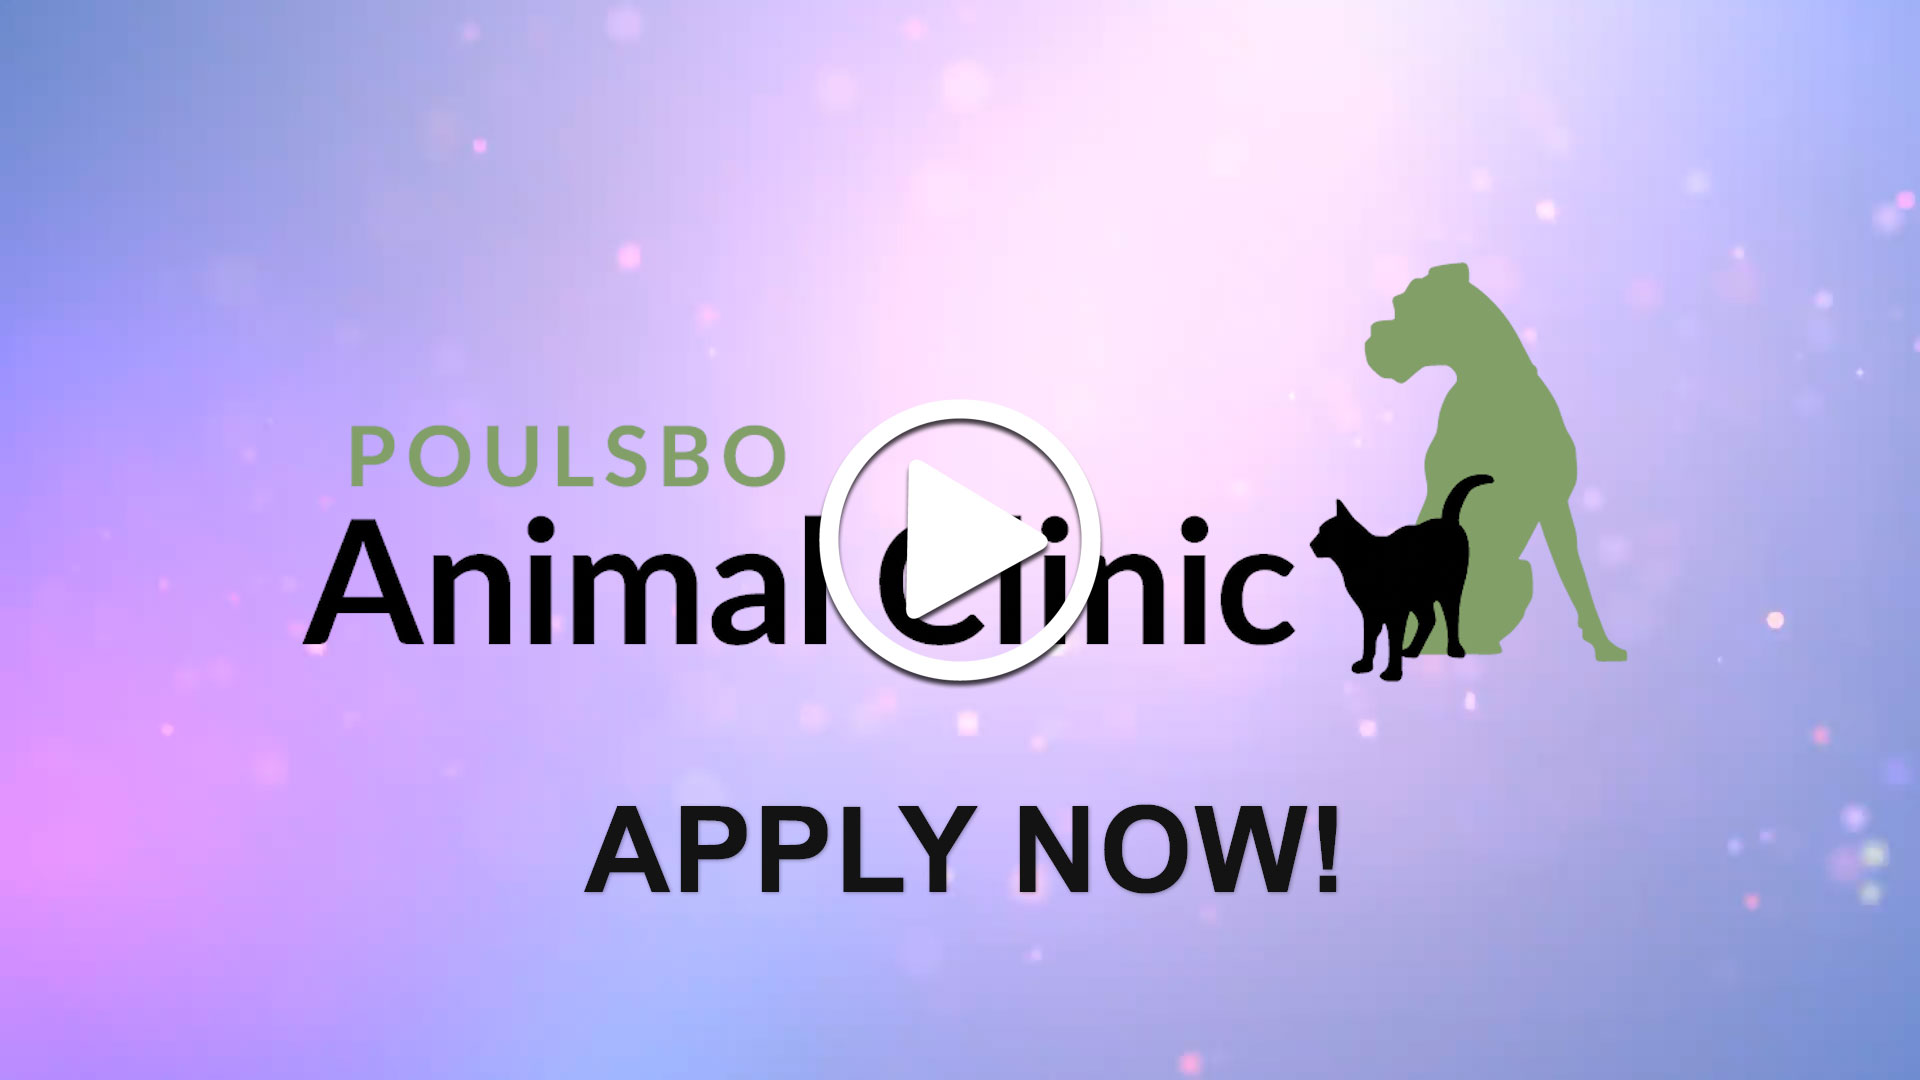 Watch our careers video for available job opening Full-Time Veterinarian for Busy Small Animal Practice in Western Washington in Poulsbo, WA, USA